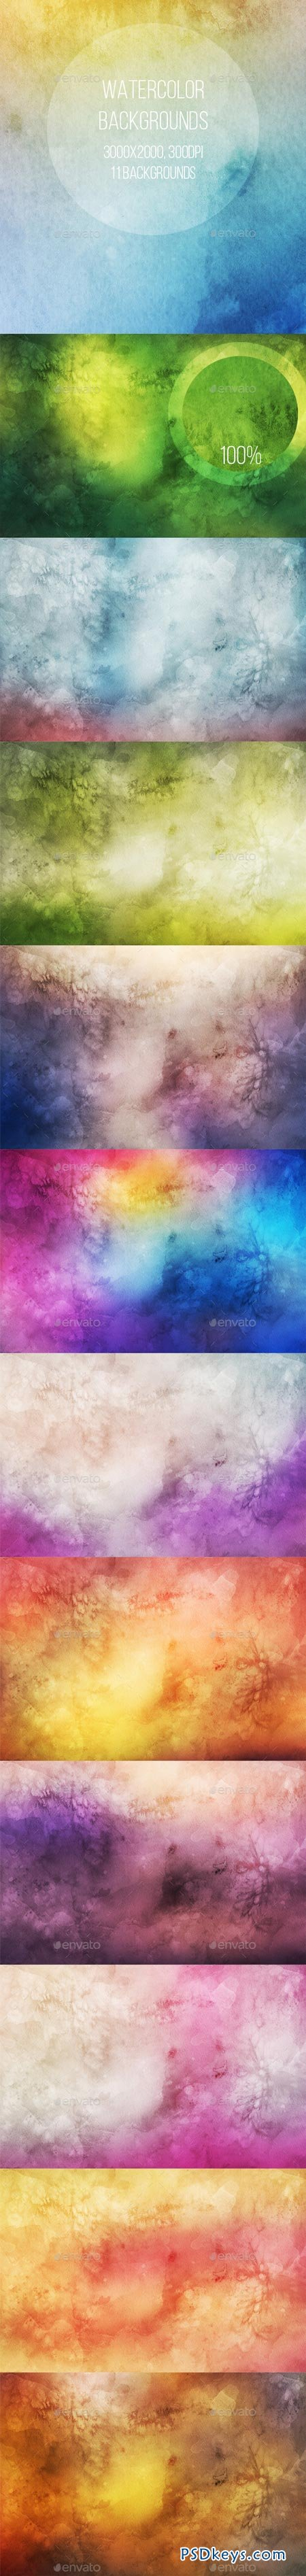 Watercolor Backgrounds 8953286